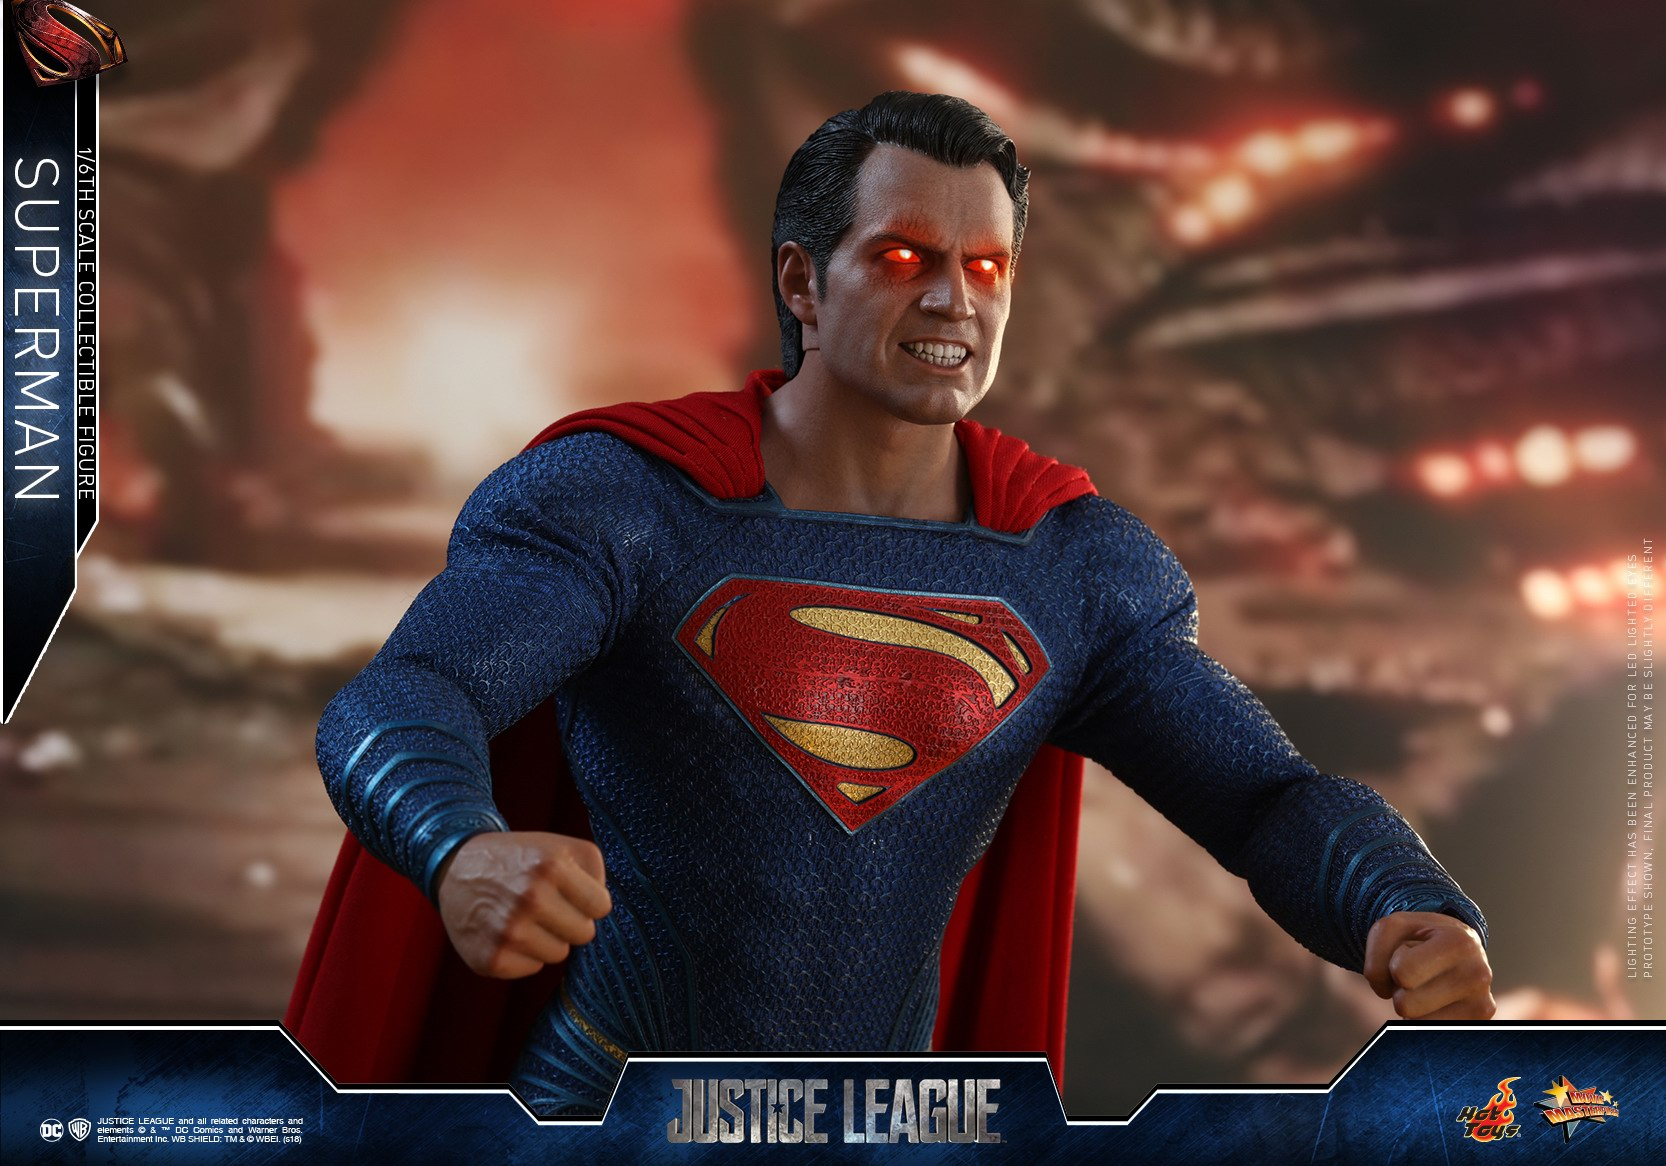 Hot Toys - Justice League - Superman collectible figure_PR21.jpg